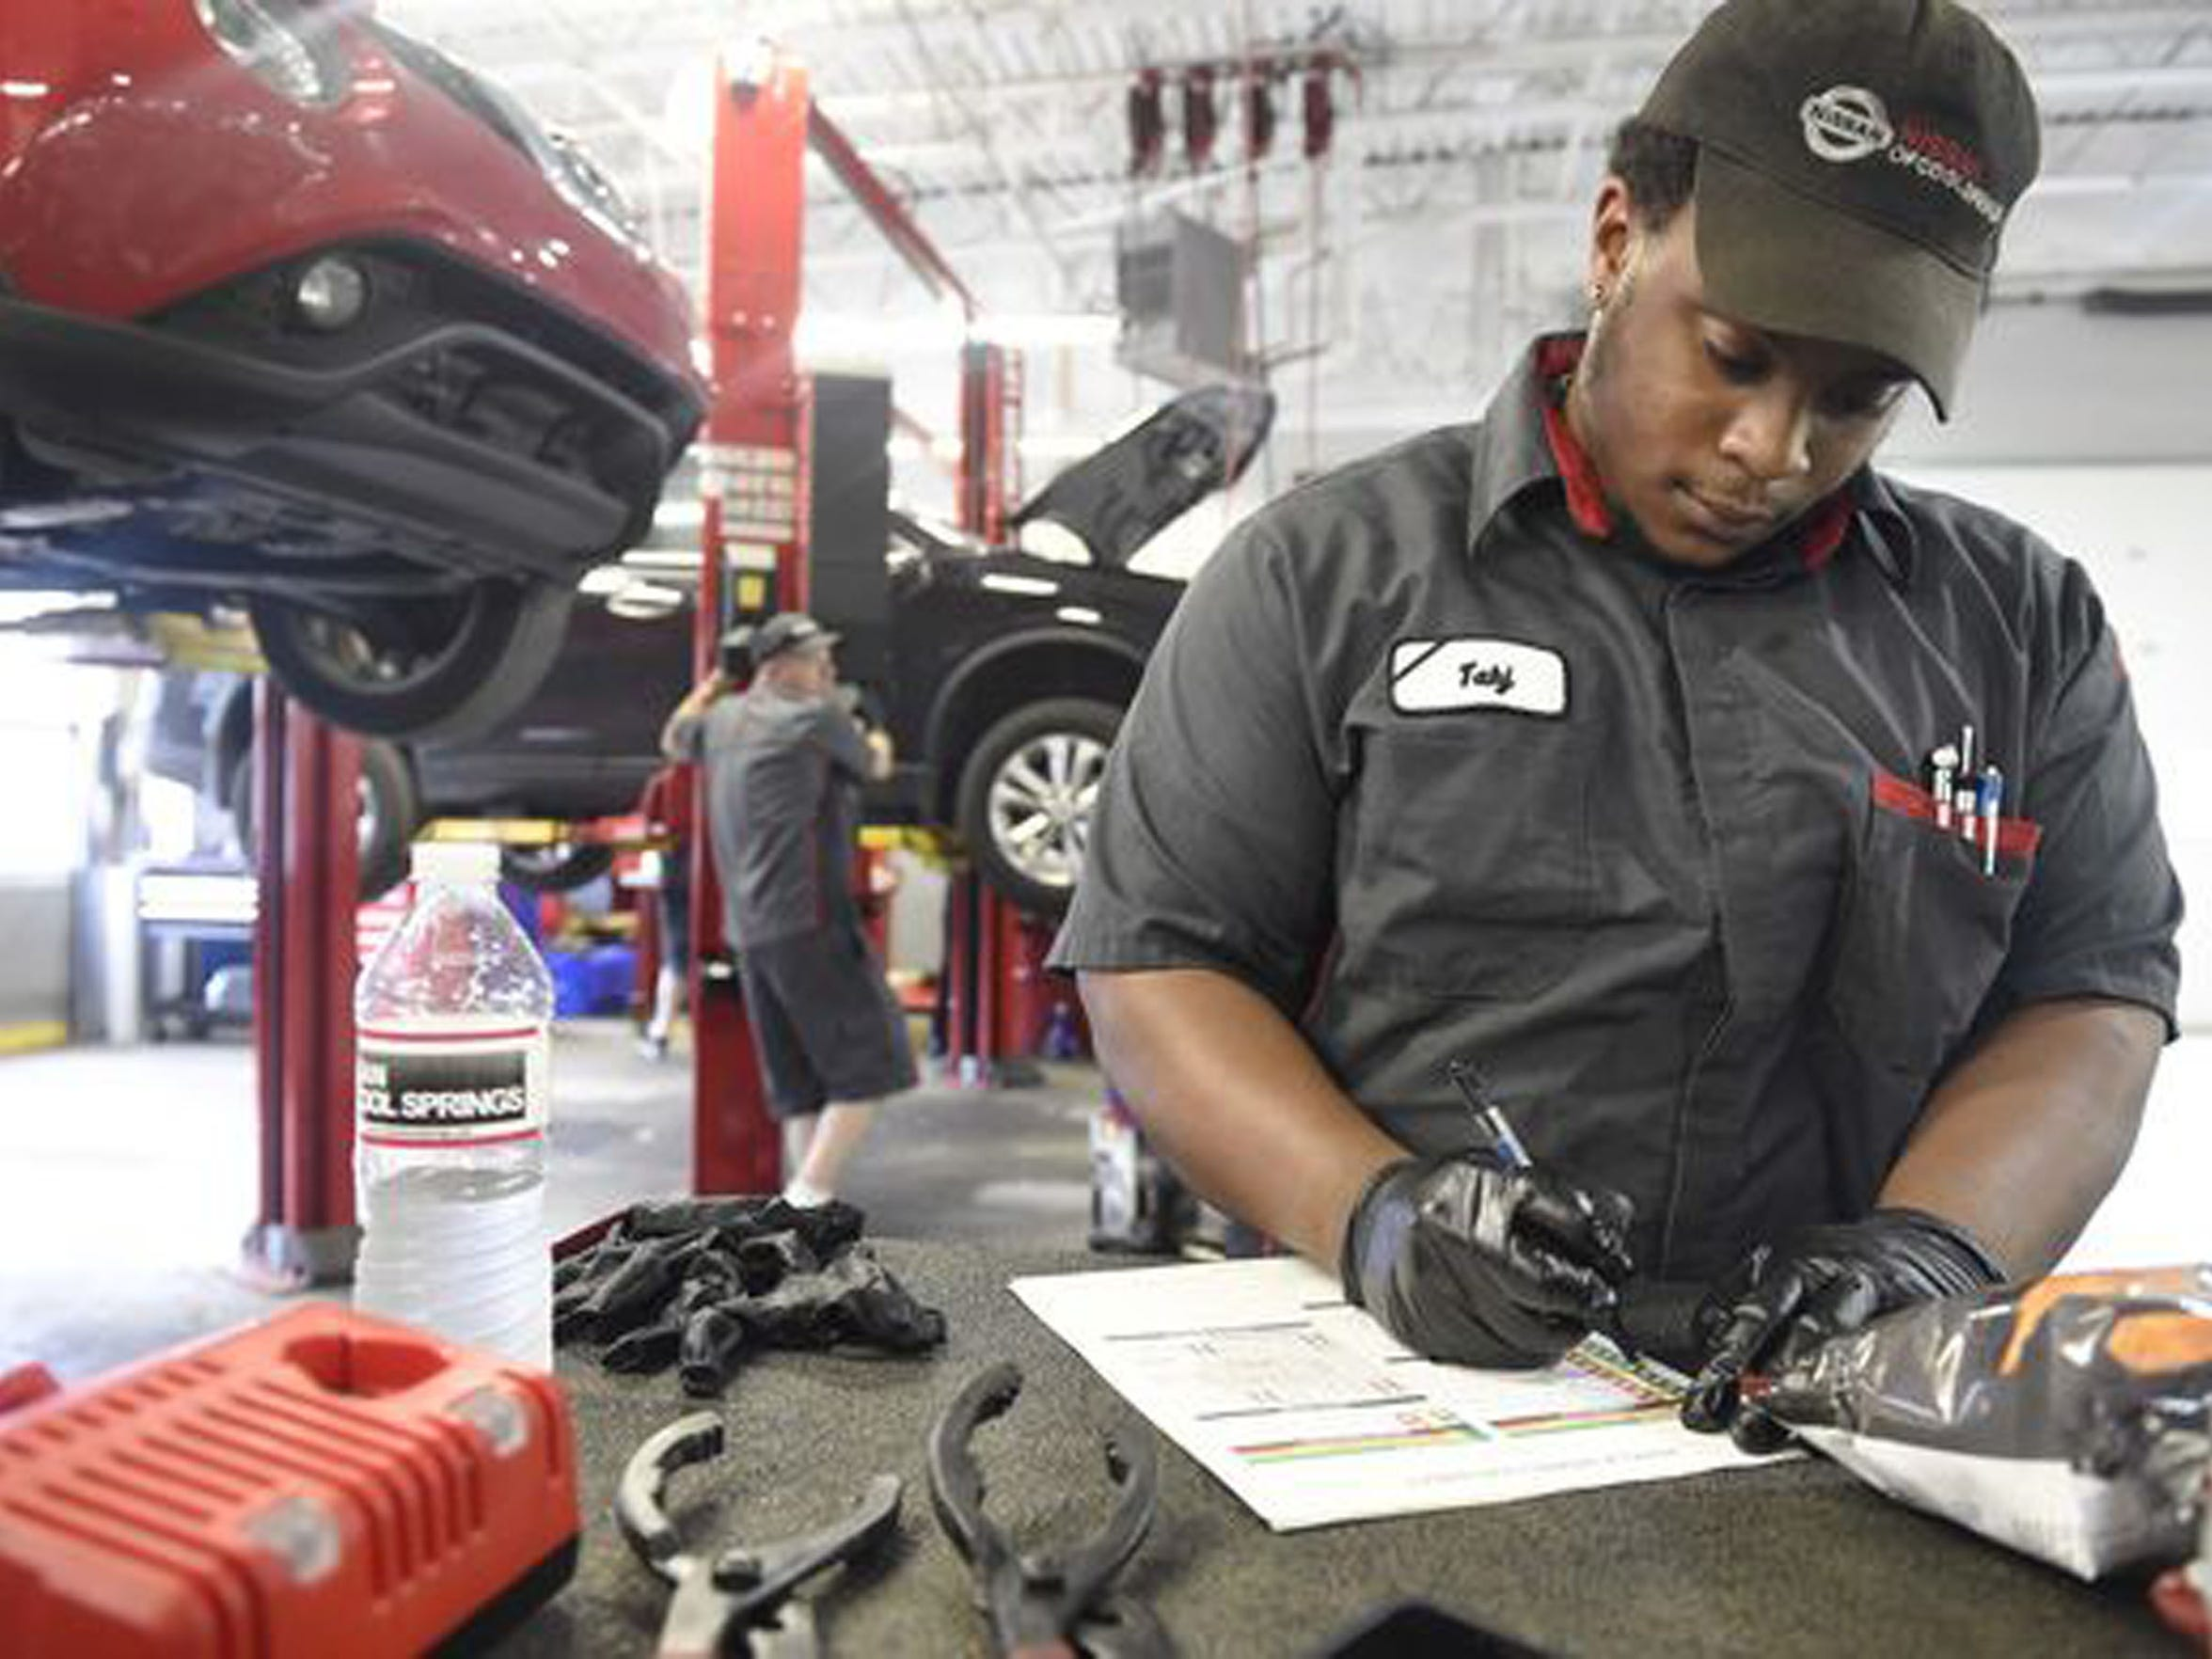 Tennessee Promise student Tahj Turnley fills out paperwork while servicing a car at the Nissan dealership in Cool Springs. He attends the Tennessee College of Applied Technology Hohenwald campus in Spring Hill.